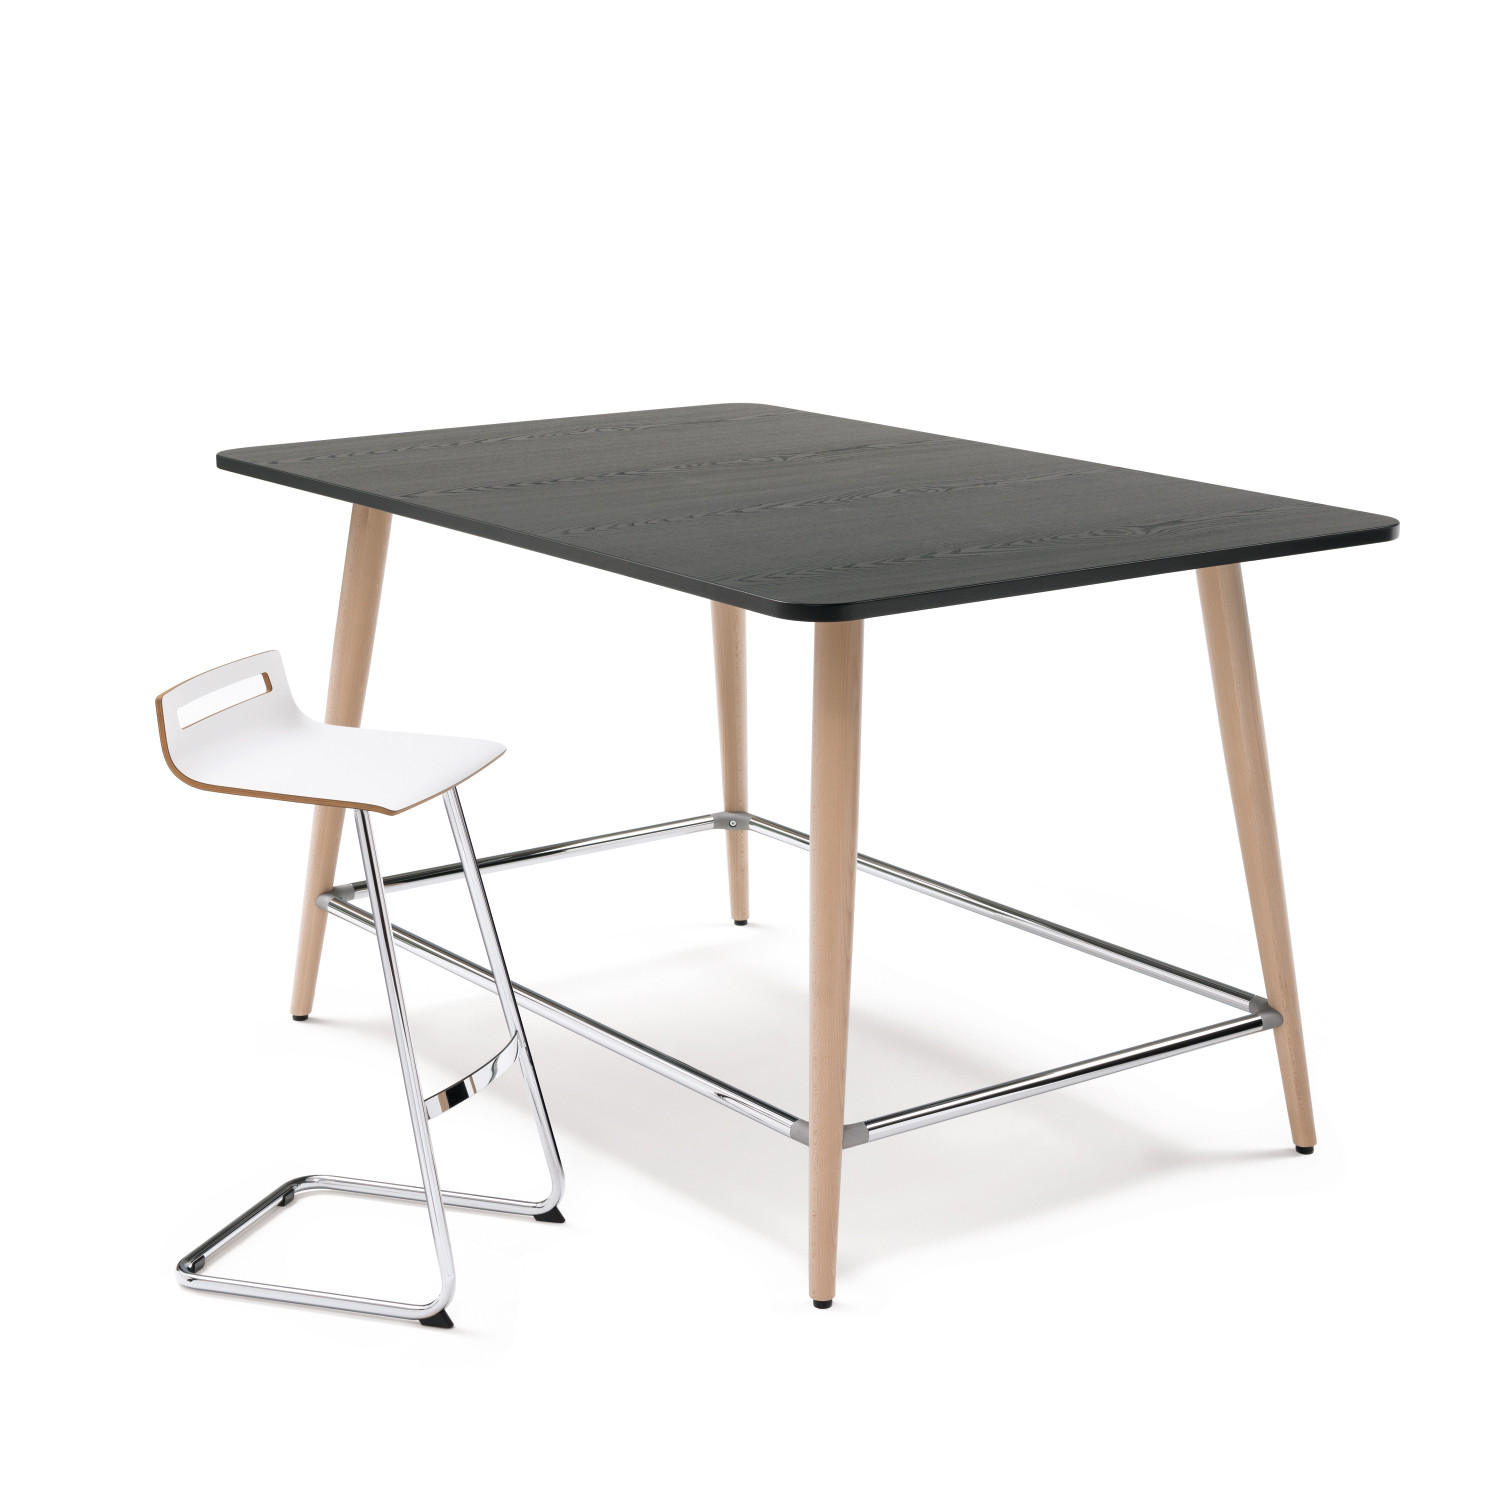 en high serie by casters desks stehtisch system previousnext on desk k individual tables